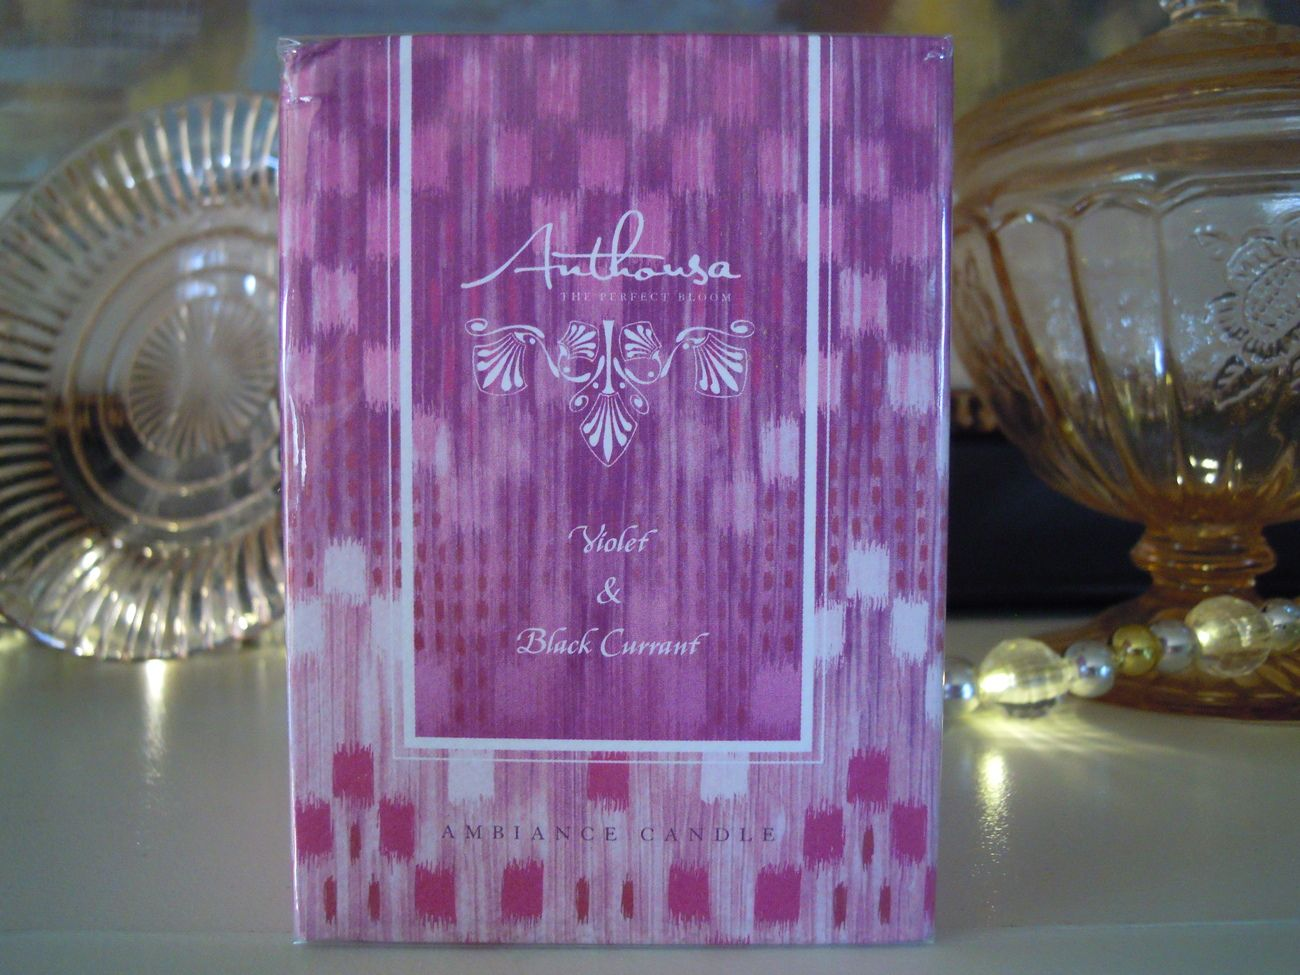 Anthousa Violet & Black Currant Candle 7.3 oz Made in the USA